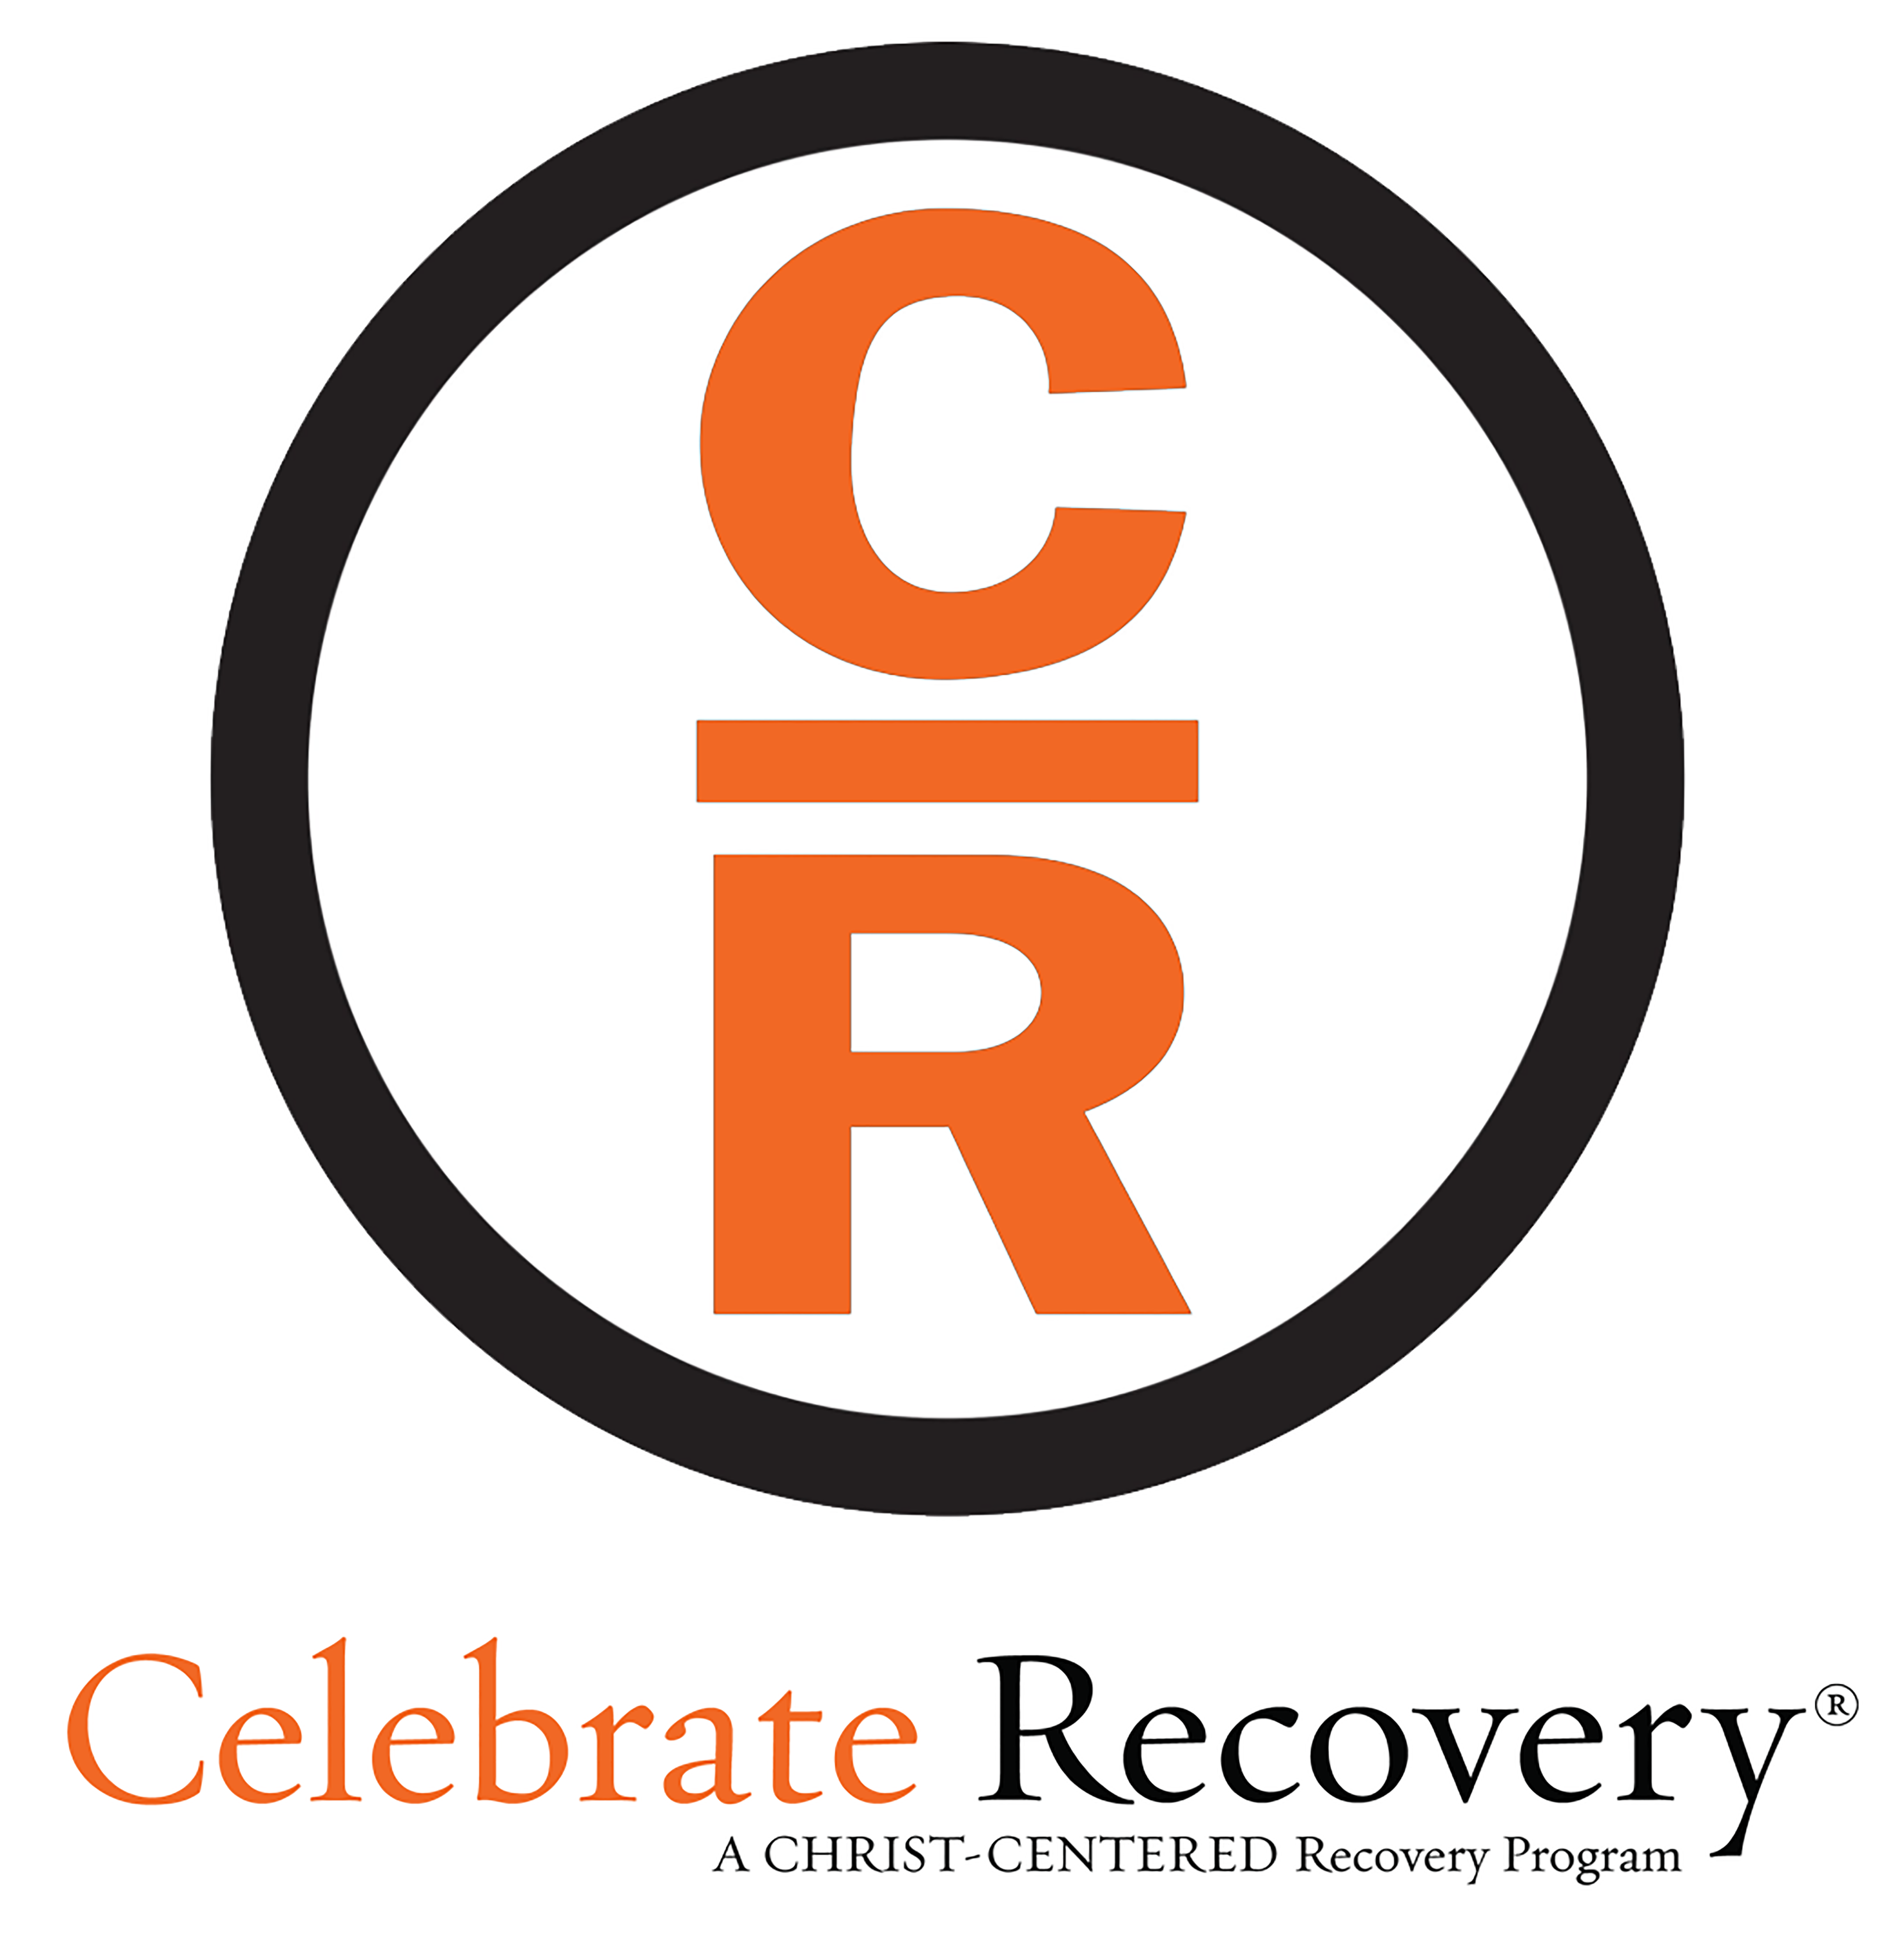 Celebrate Recovery Resources